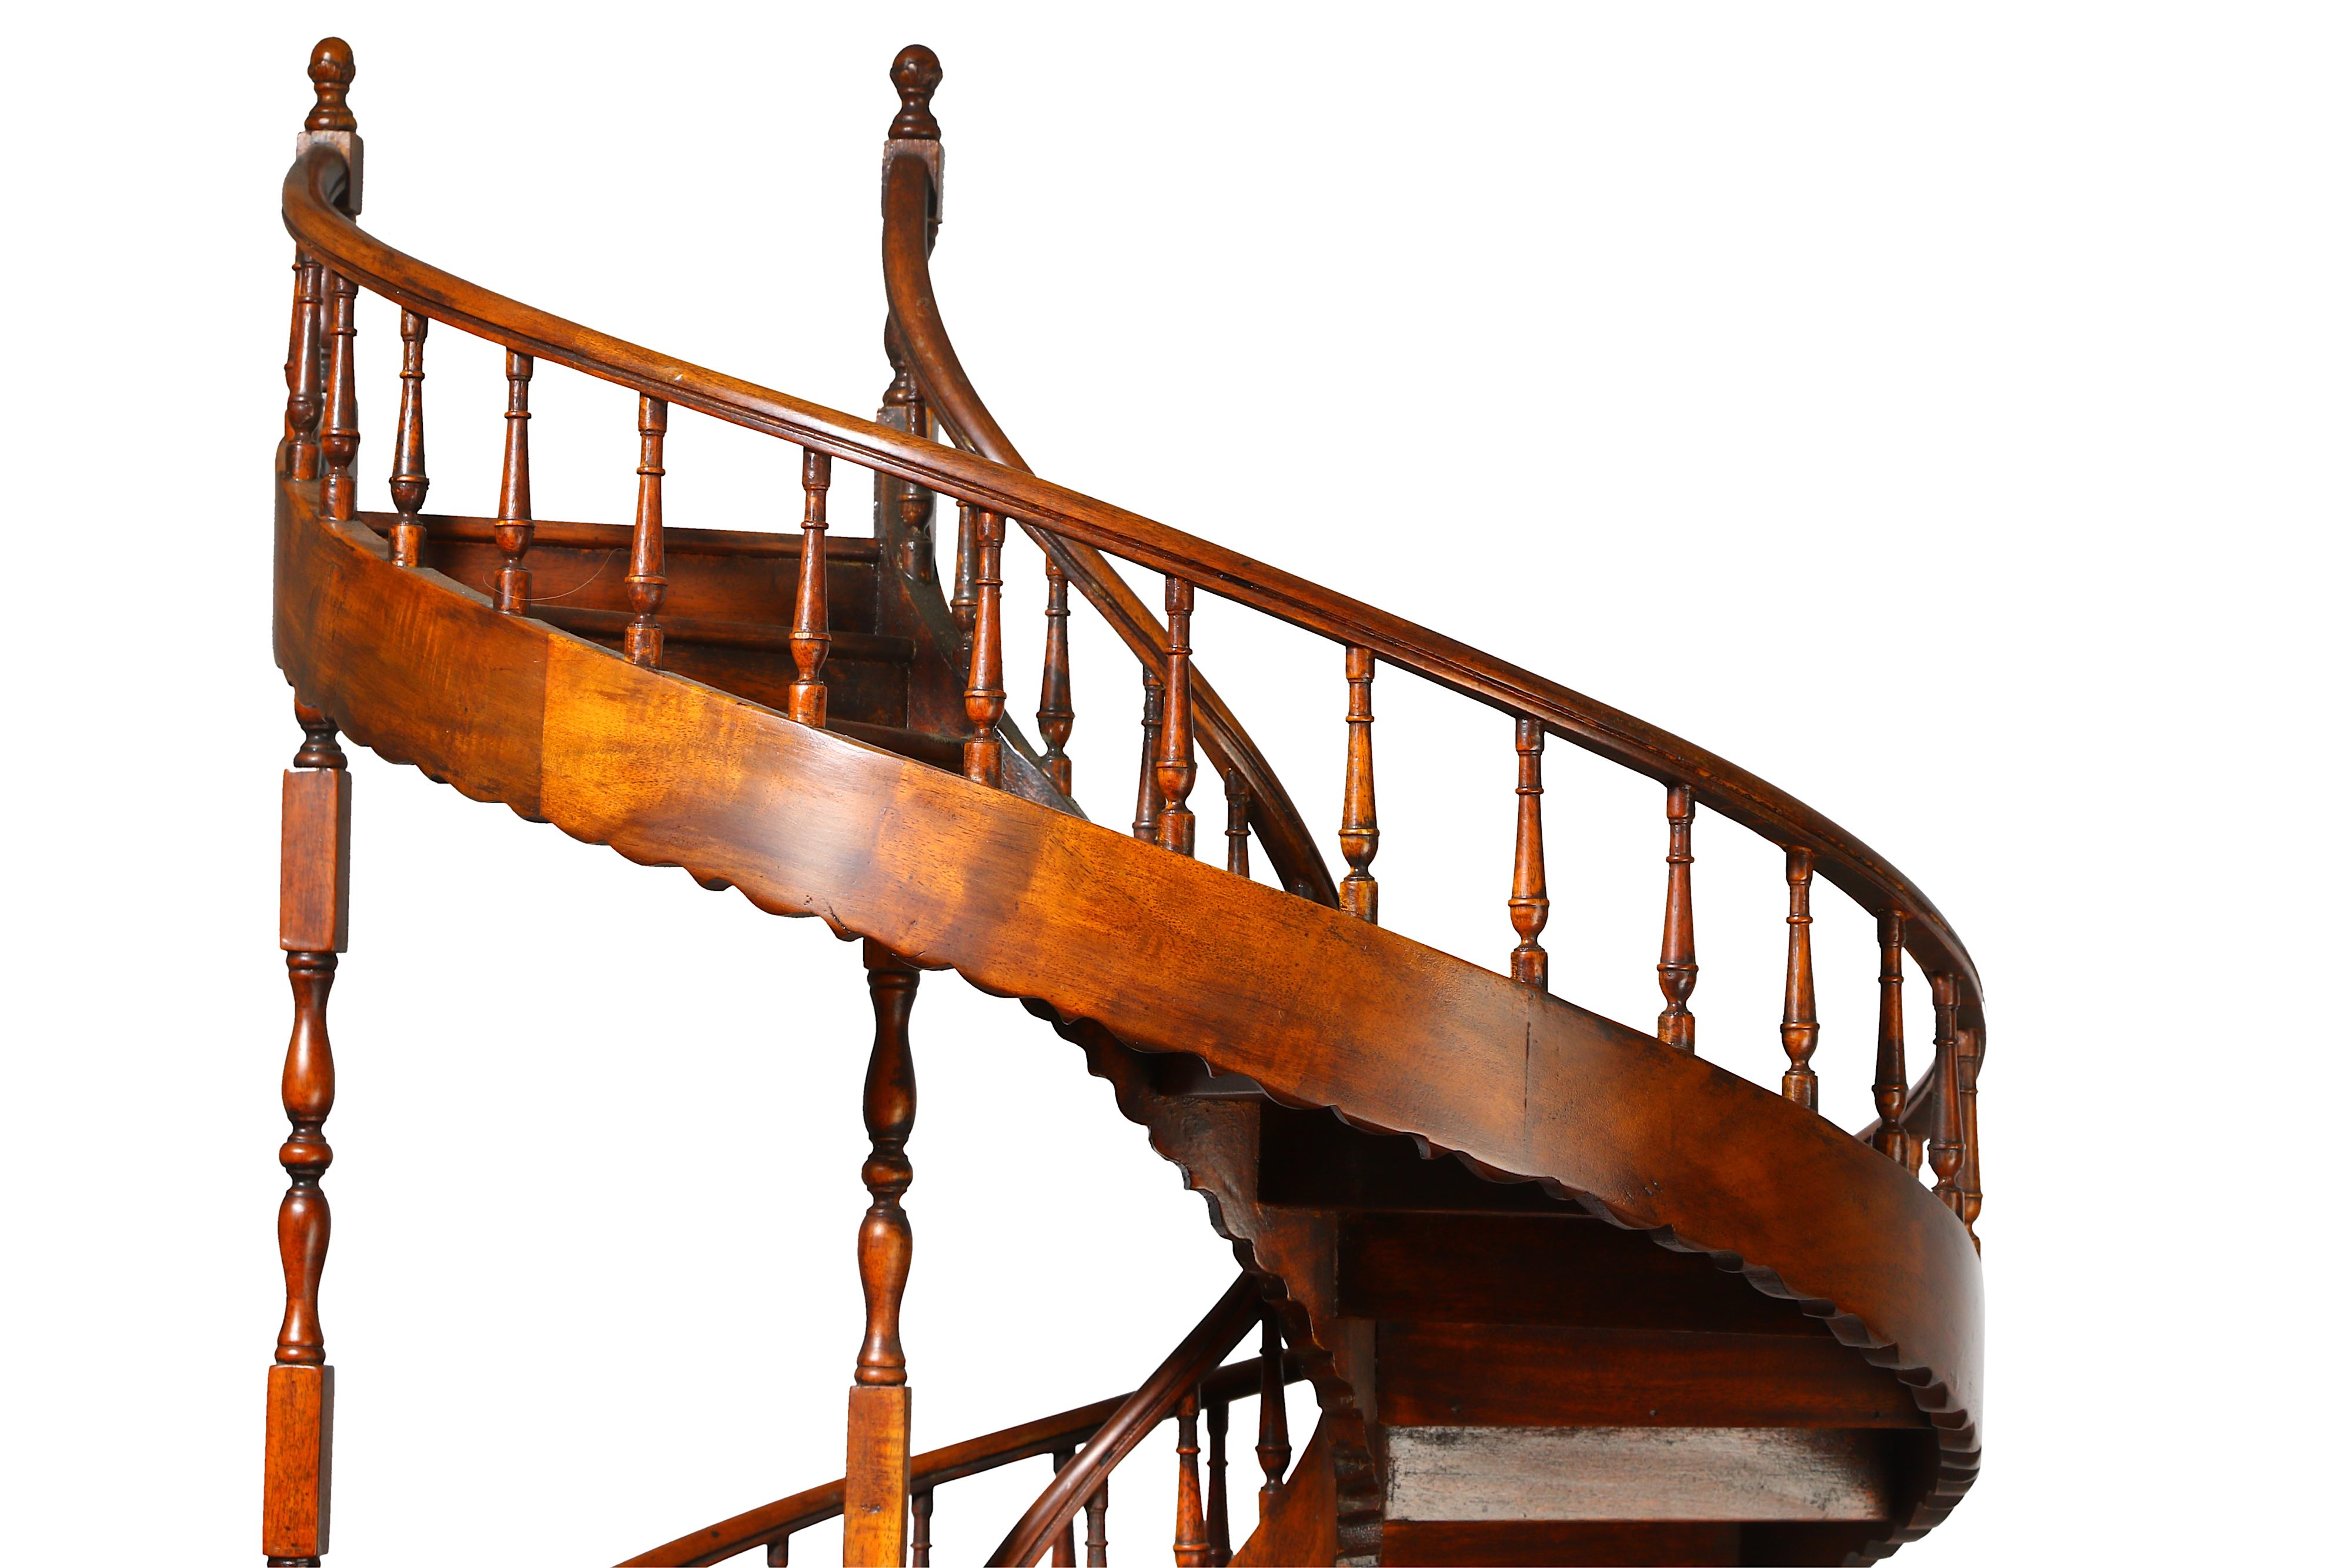 A LARGE EARLY 20TH CENTURY MAHOGANY APPRENTICE'S ARCHITECTURAL MODEL OF A SPIRAL STAIRCASE - Image 4 of 9